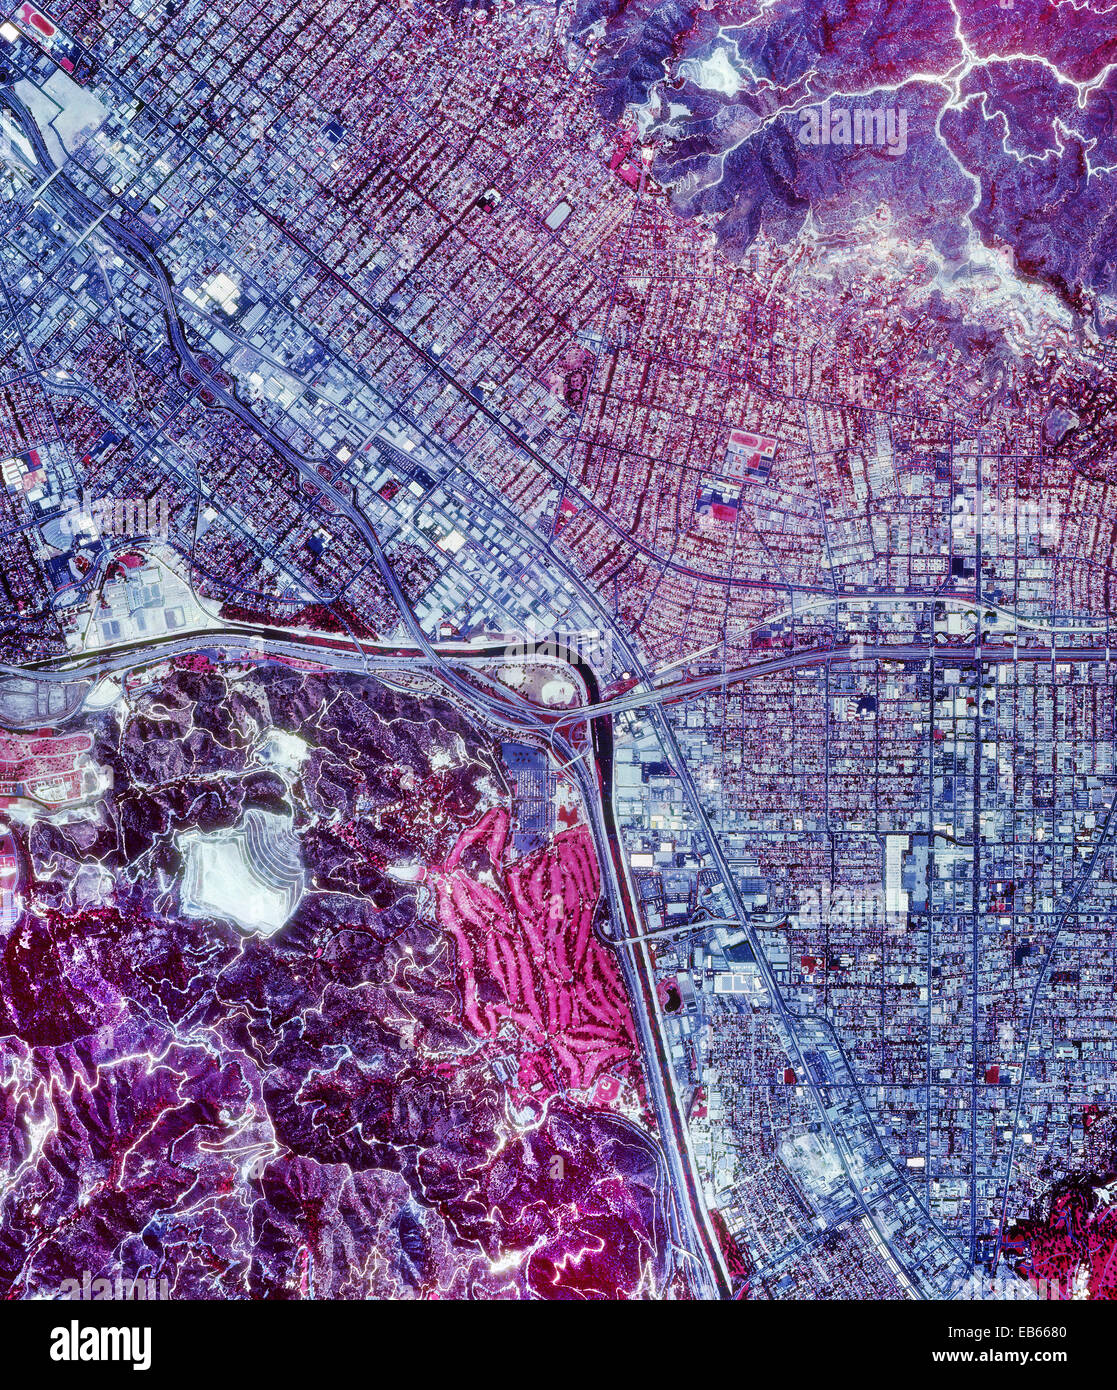 historical infrared aerial photograph of Burbank, California, 1989 - Stock Image